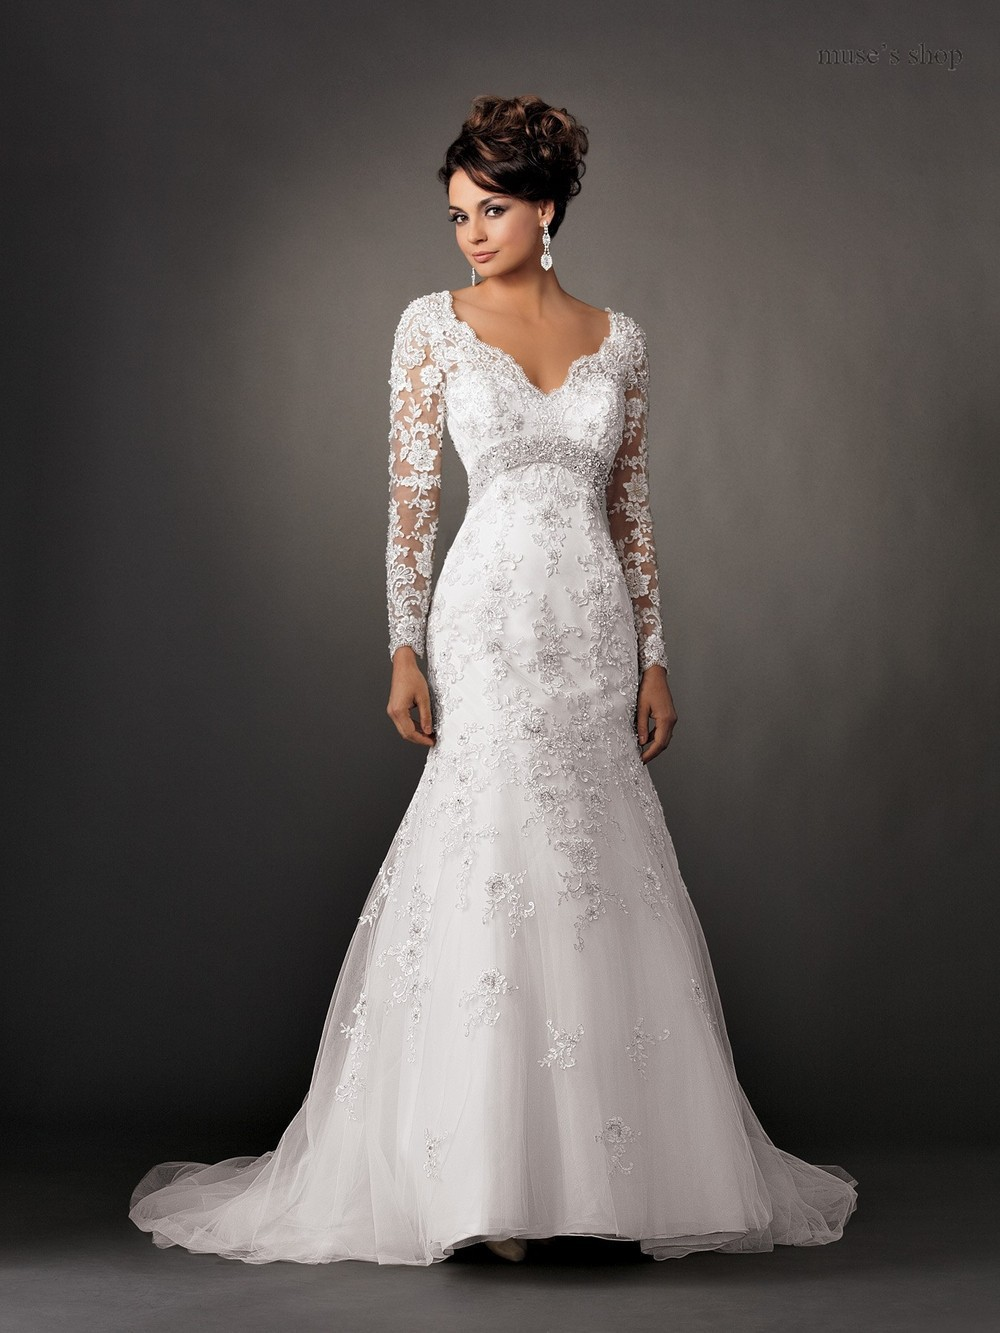 V neck vintage long sleeve lace wedding dresses backless for Vintage backless wedding dresses